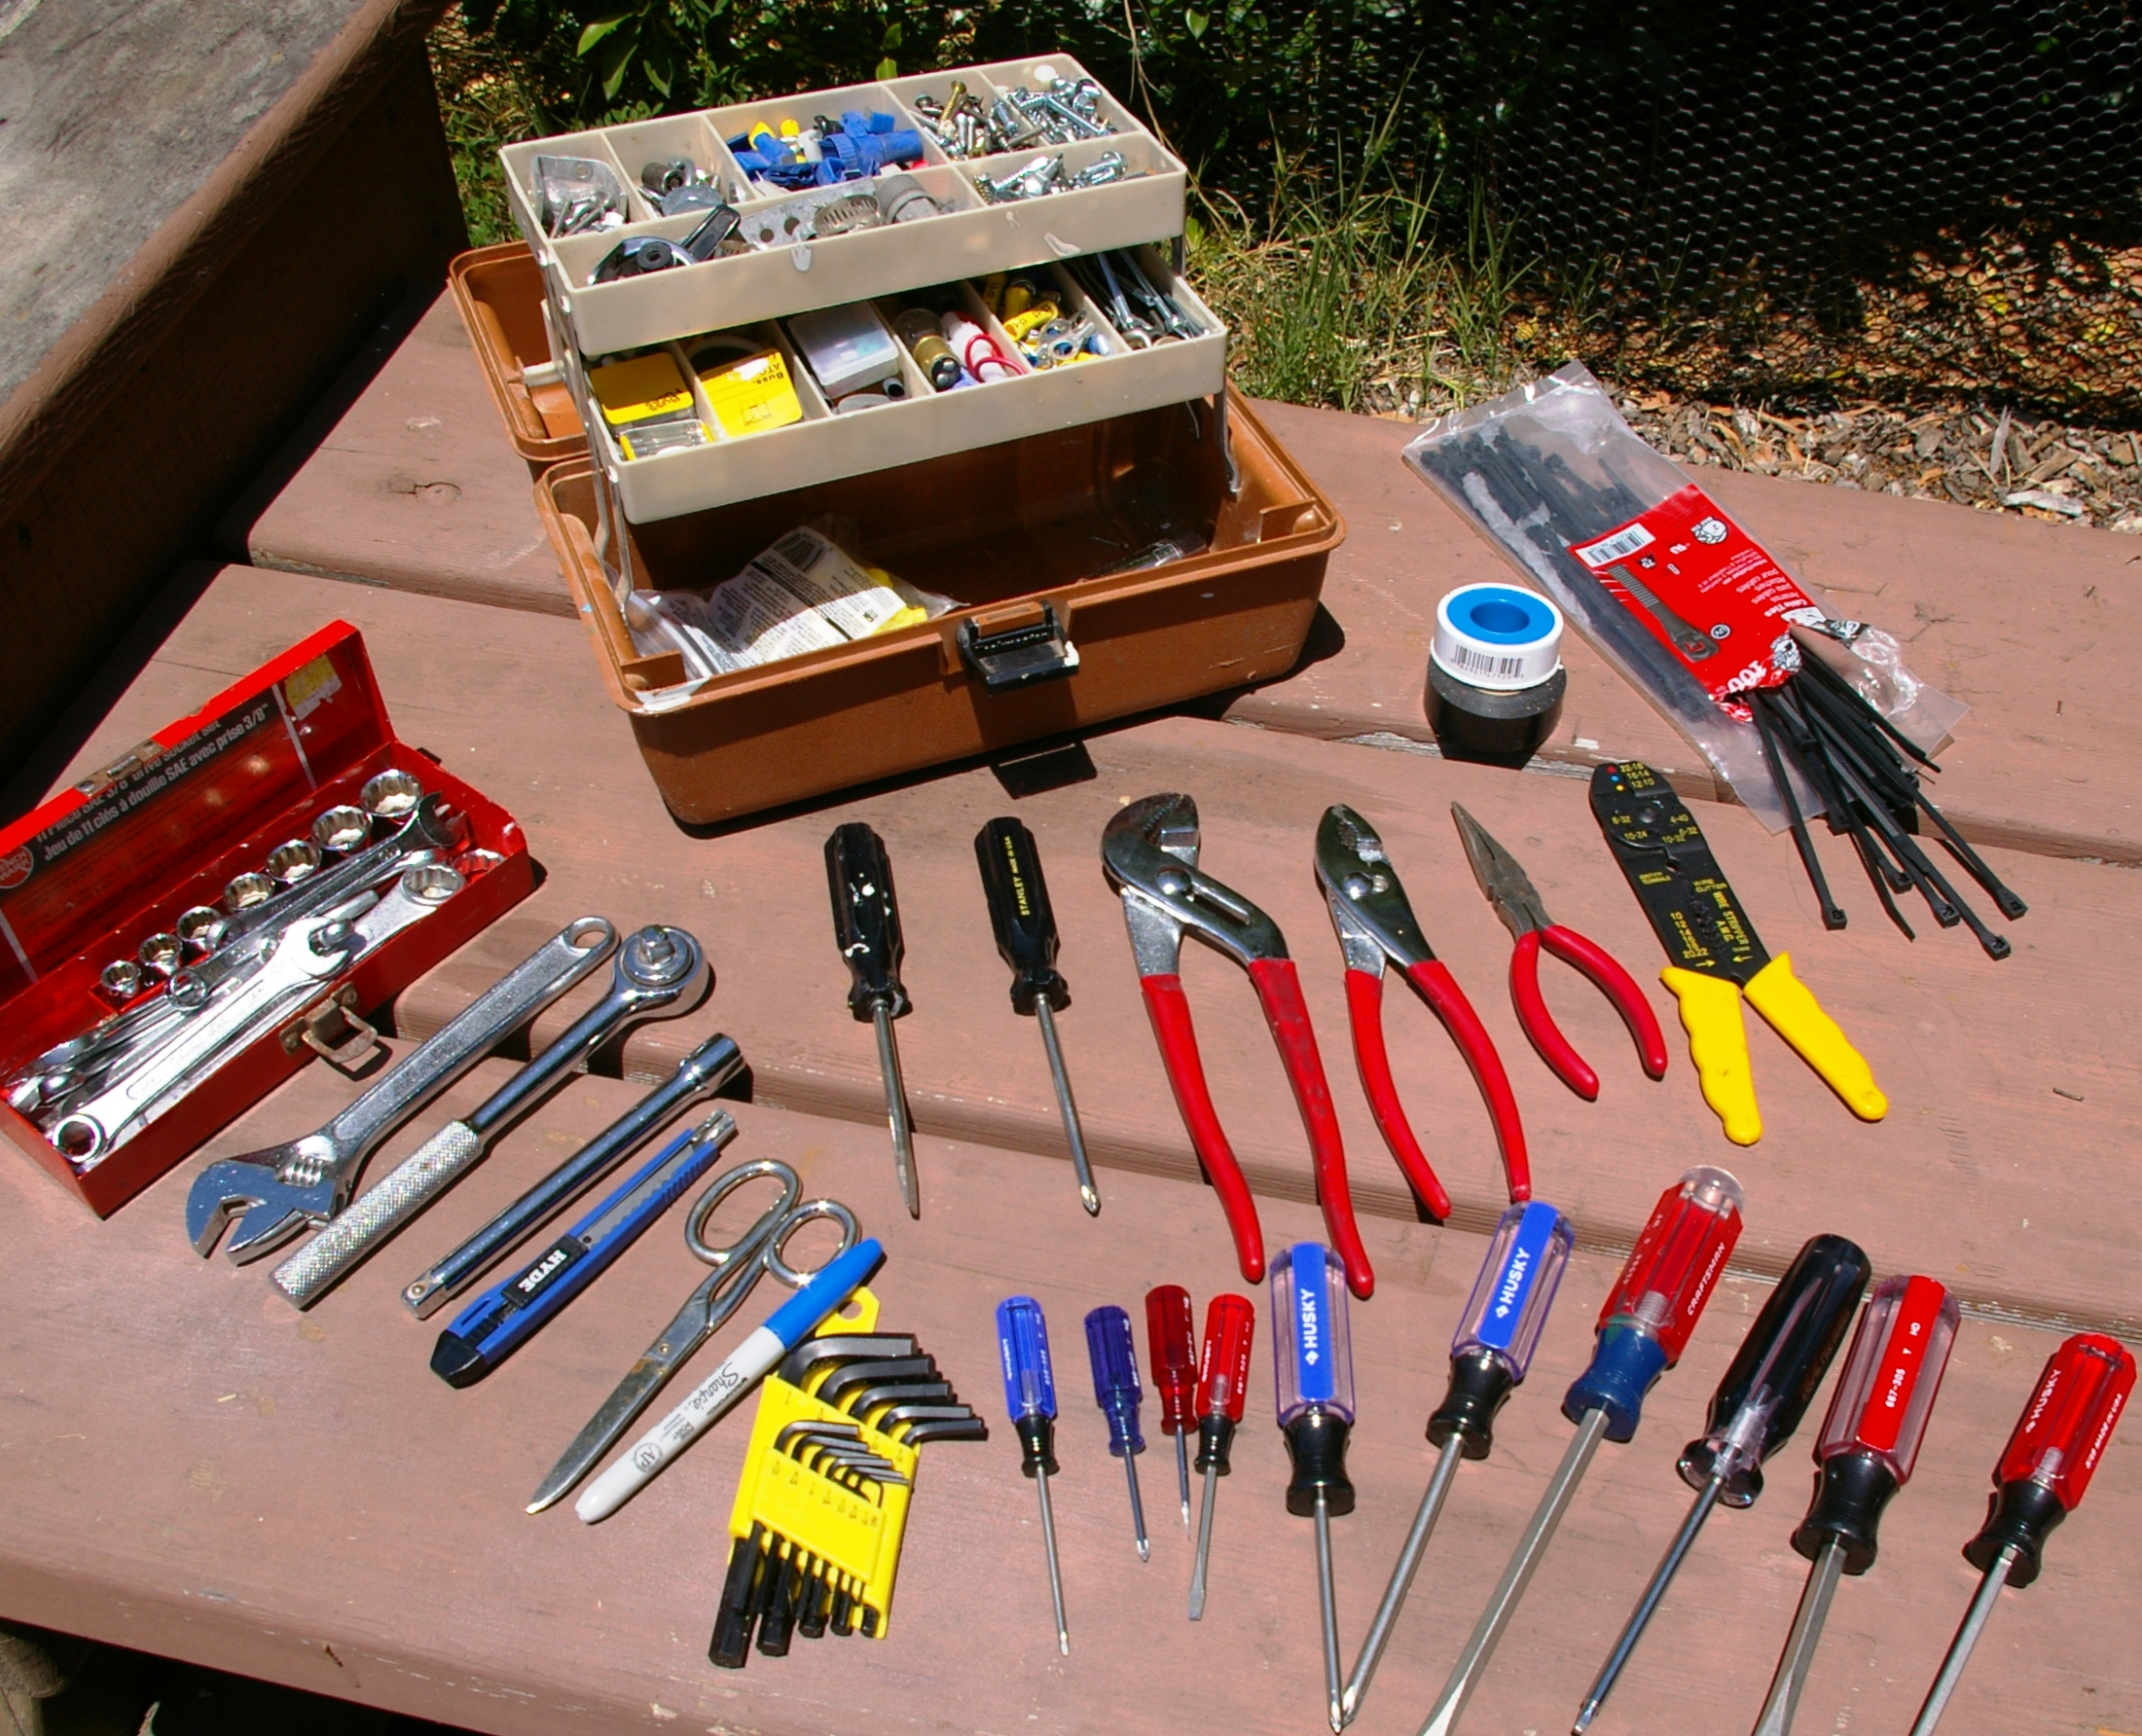 The Essential RV Fulltimer Tool Kit - Insight RV Blog from RVT.com